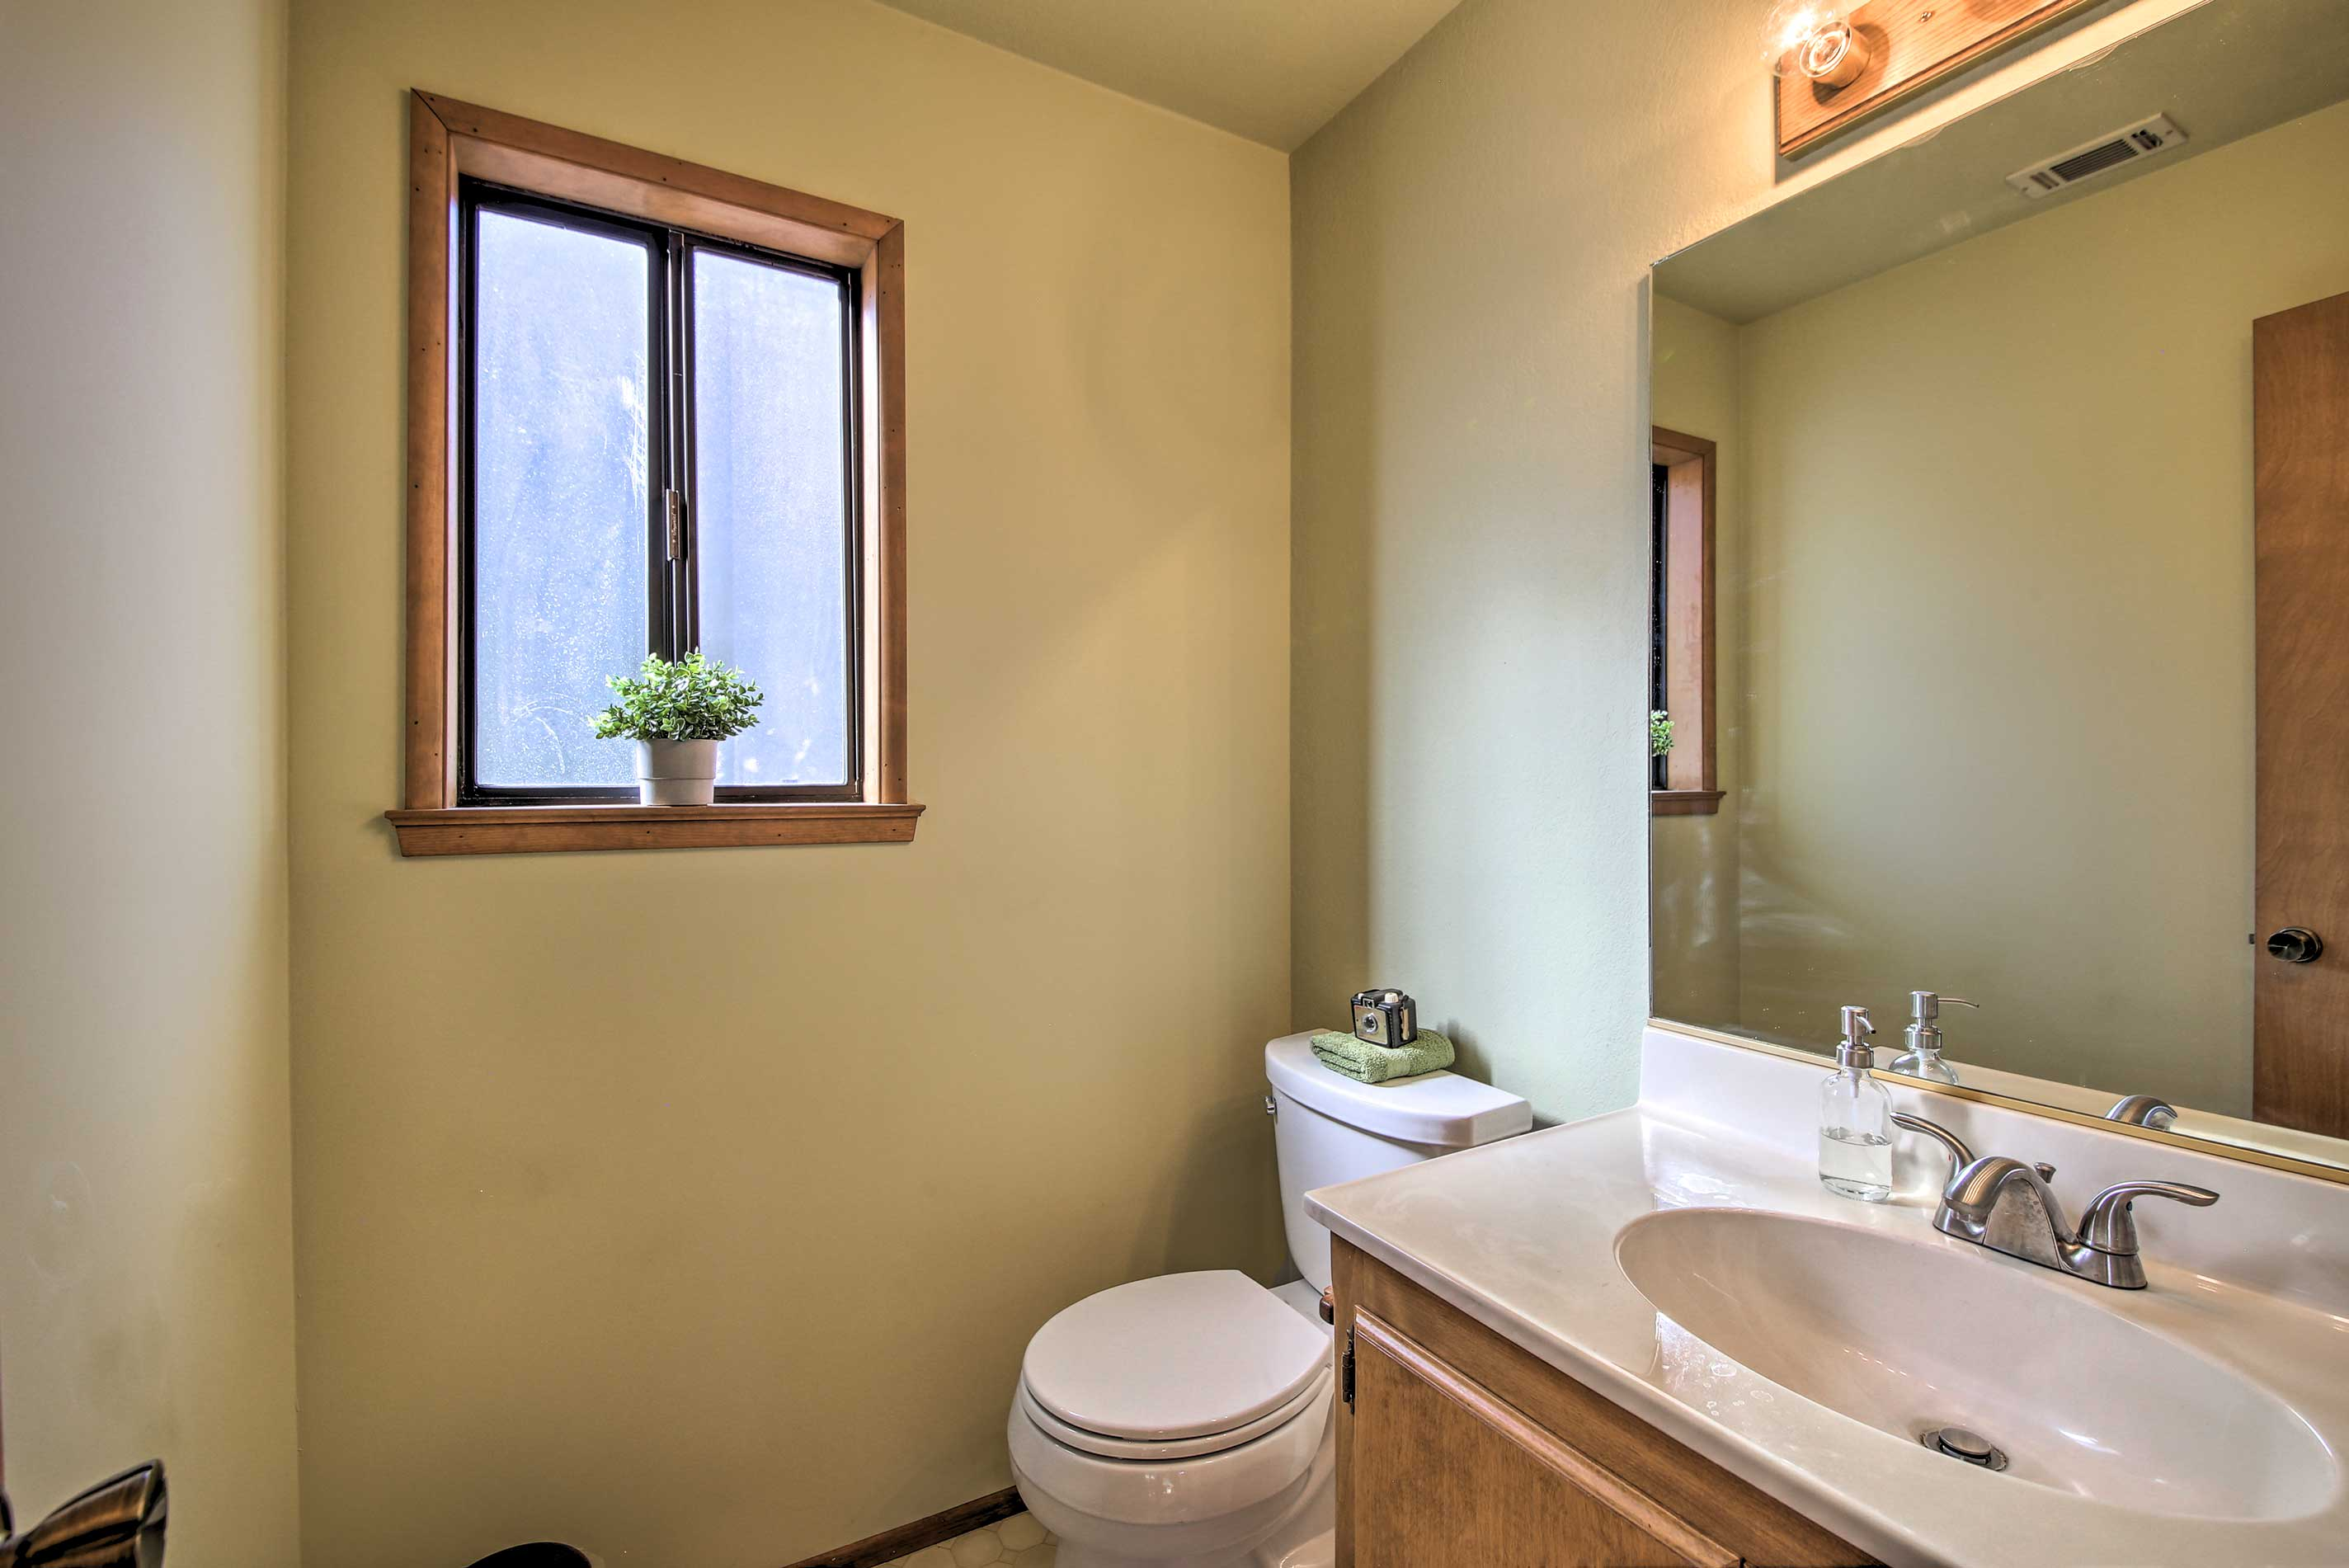 This property features a total of 2.5 bathrooms.